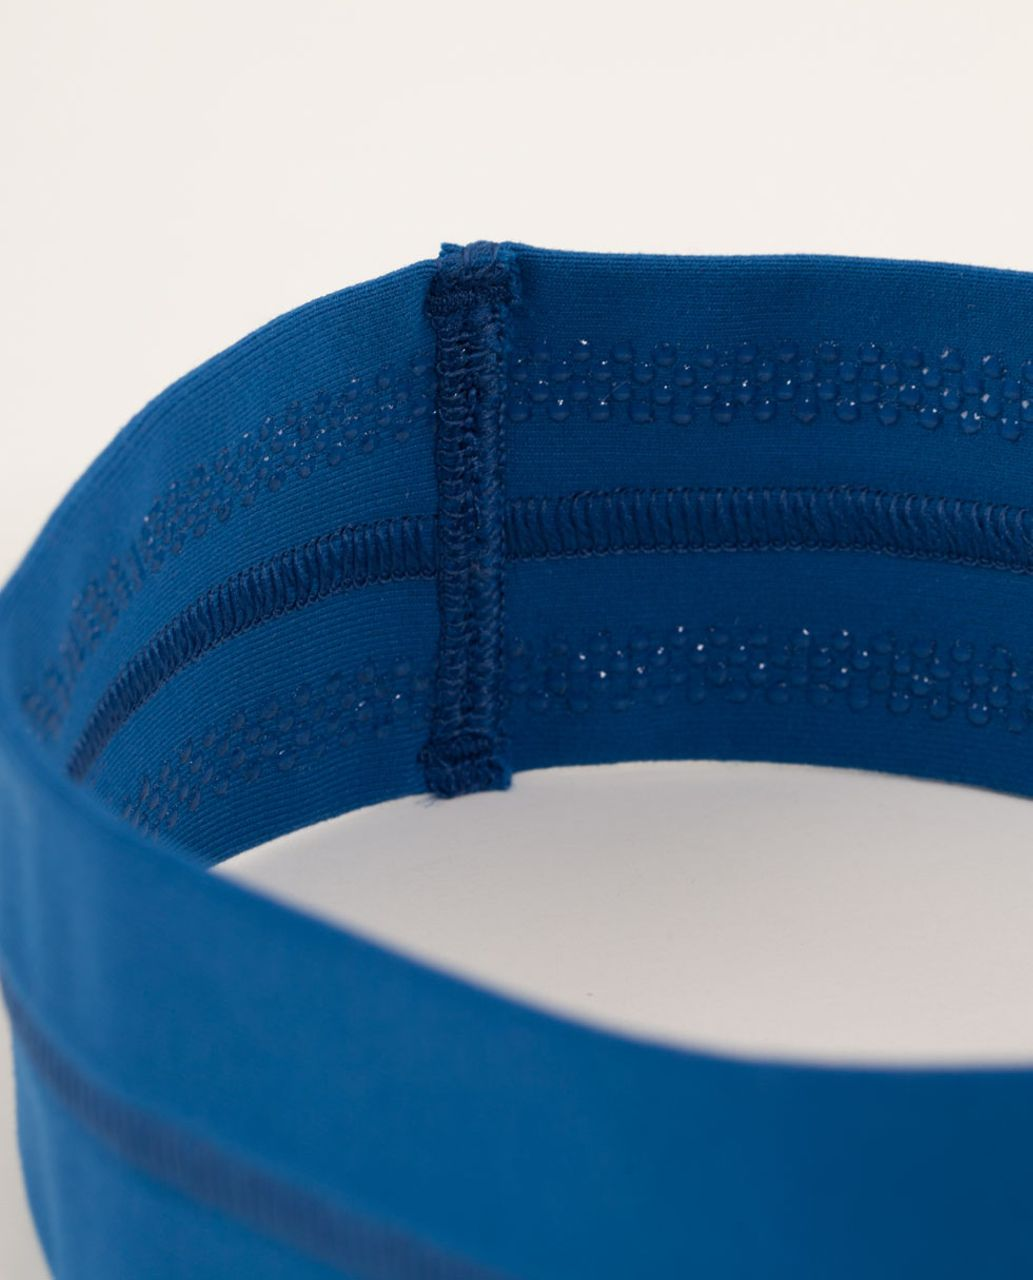 Lululemon Fly Away Tamer Headband - Limitless Blue